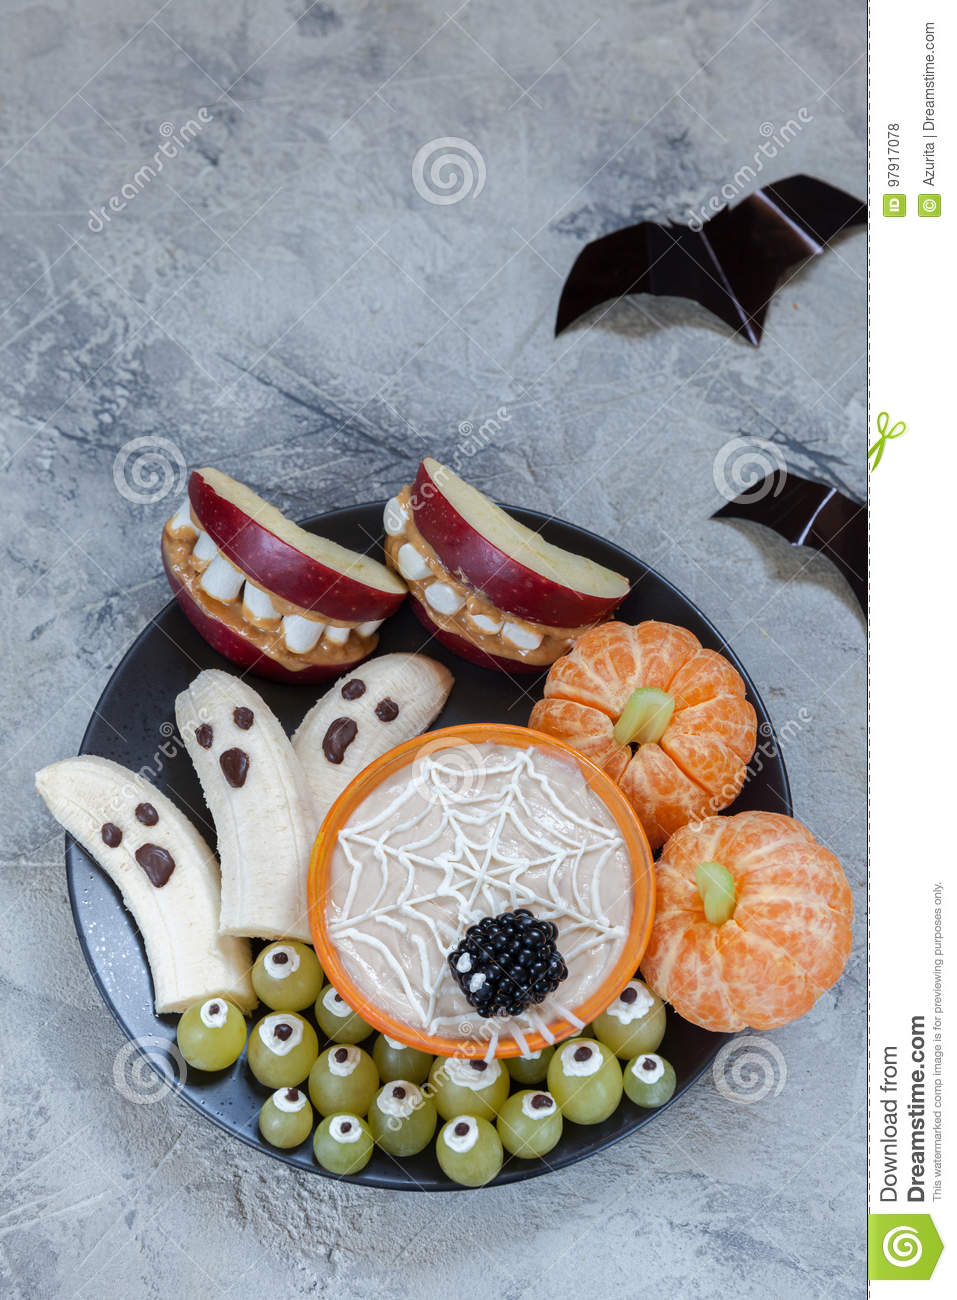 Download Fruit Halloween Treats. Banana Ghosts And Clementine Orange Pumpkins, Apple Monster Mounts And Spider Web Stock Photo - Image of delicious, apple: 97917078